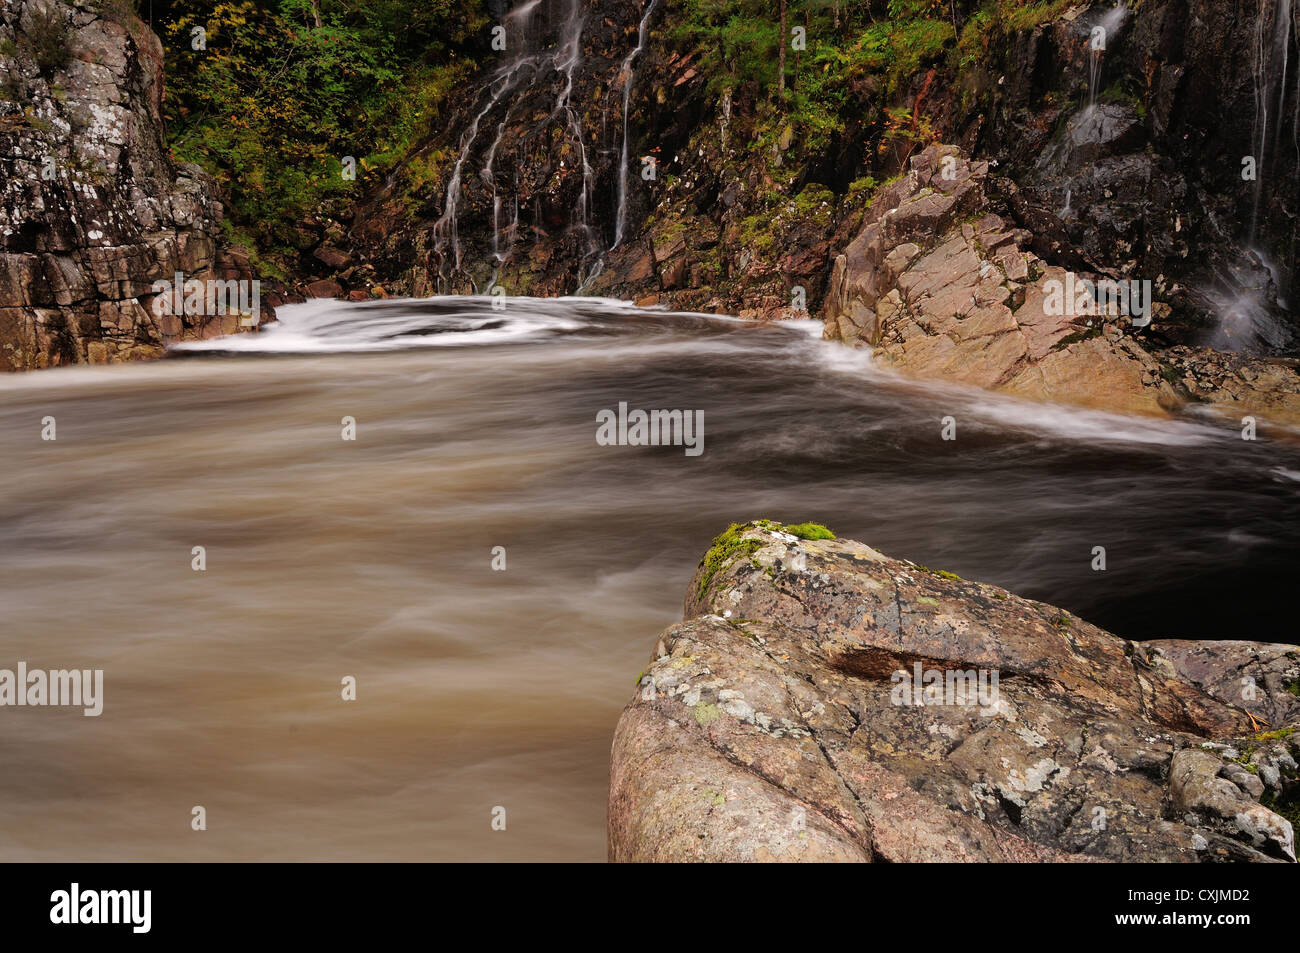 Swirling water and waterfalls on the River Etive, Glen Etive, Scottish Highlands - Stock Image